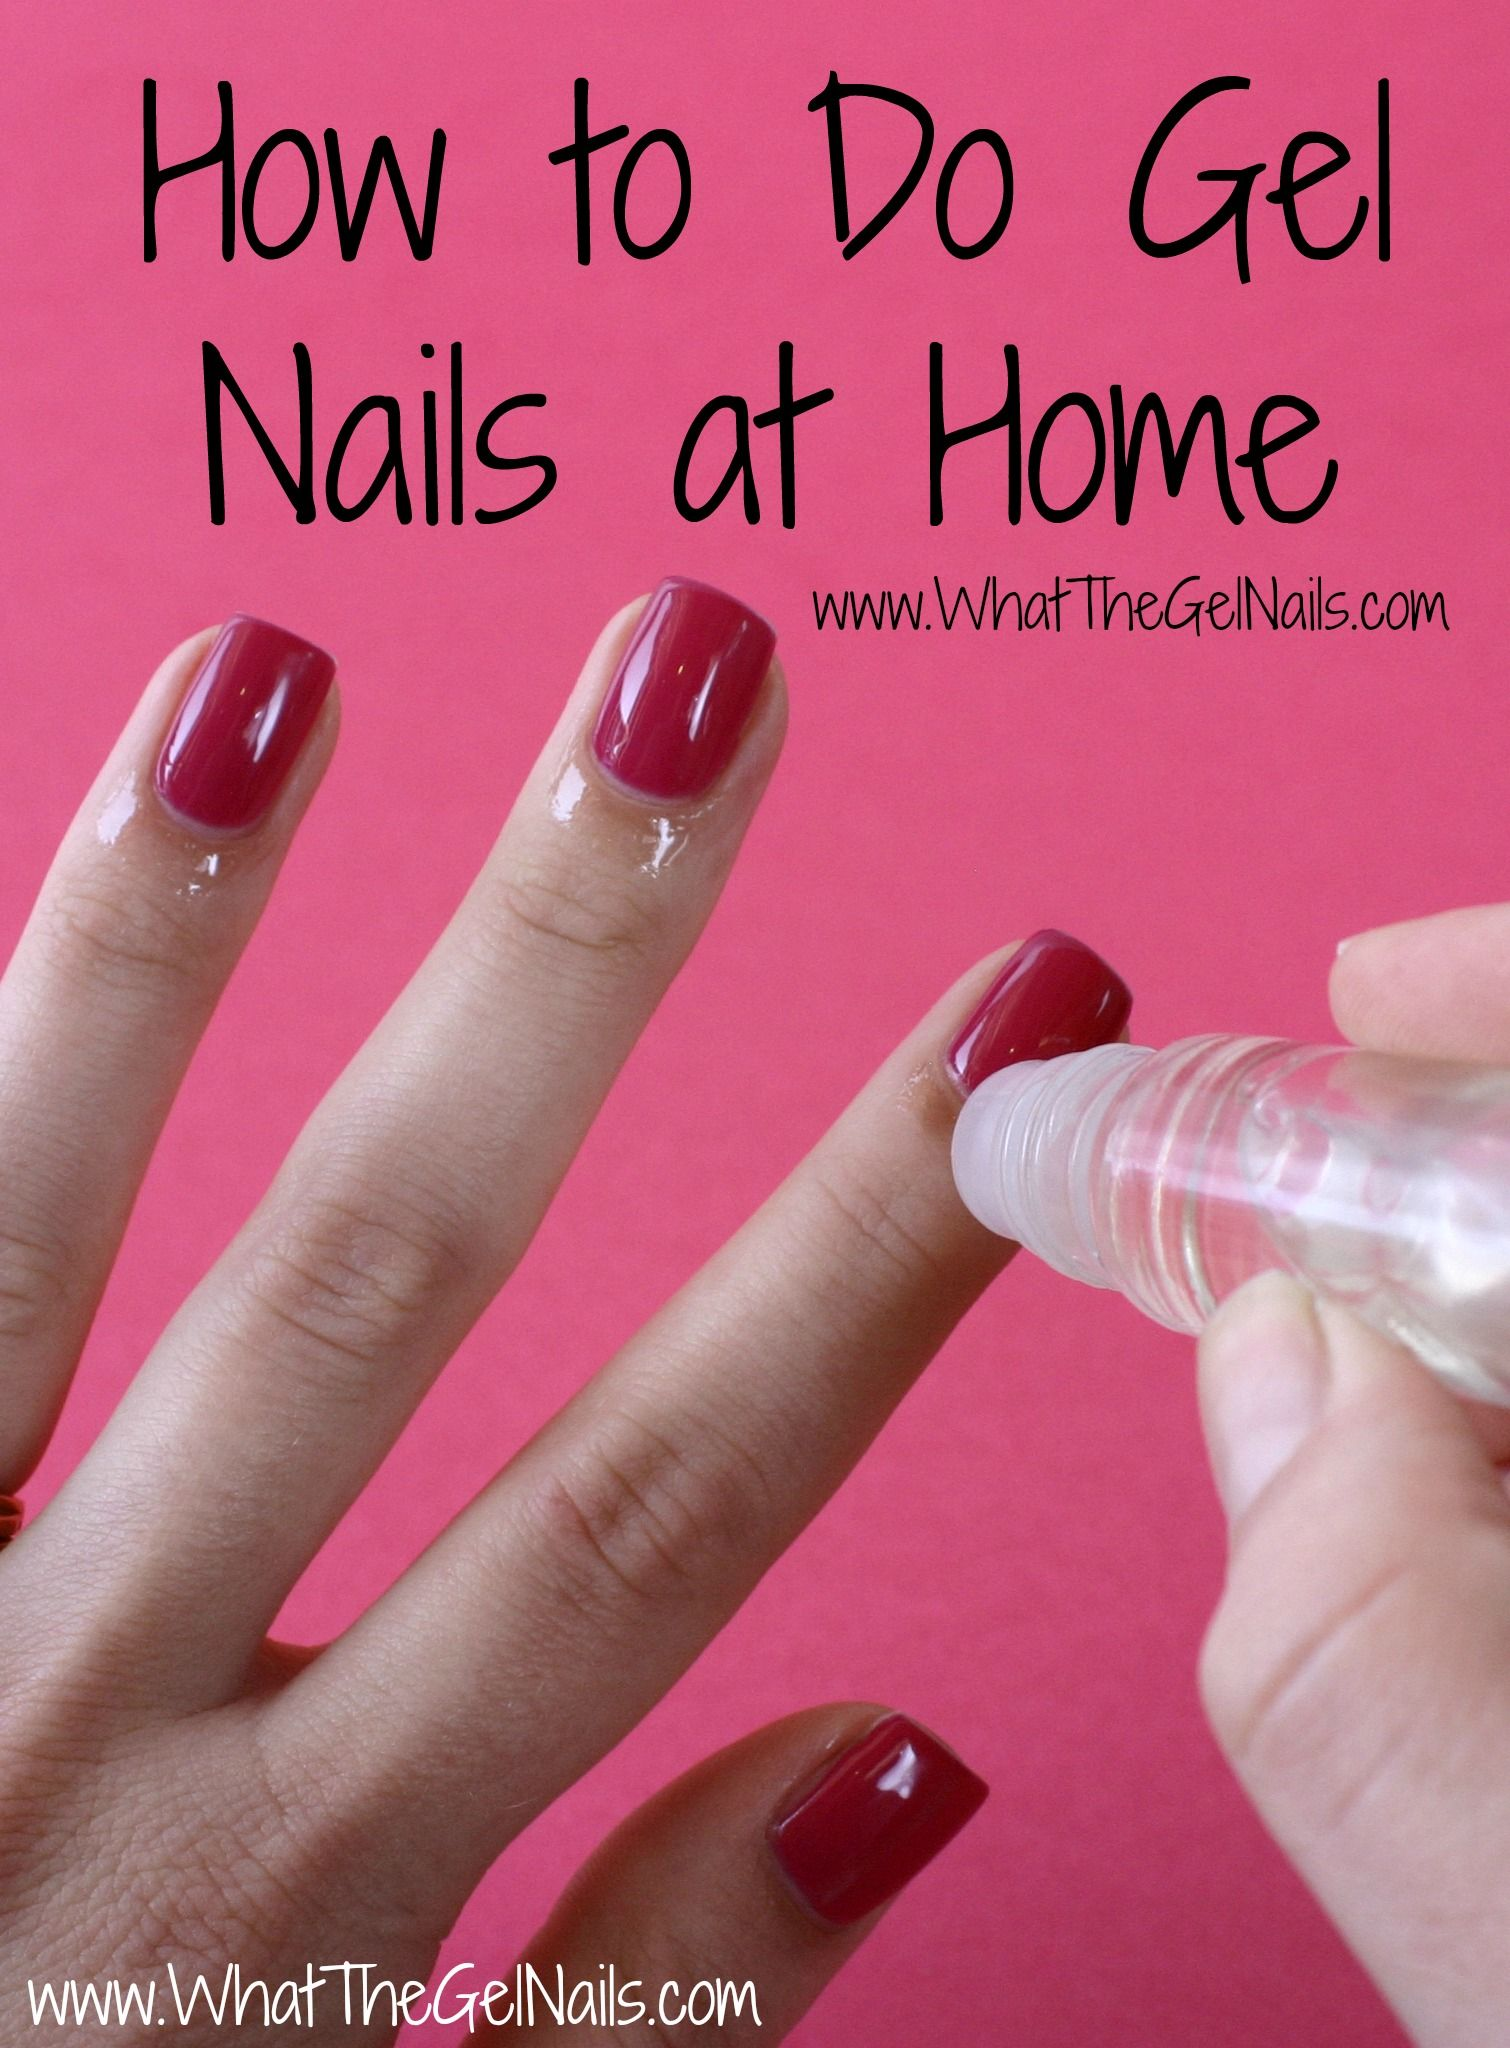 How To Do Gel Nails At Home Gel Nails Diy Dry Nails Gel Nails At Home